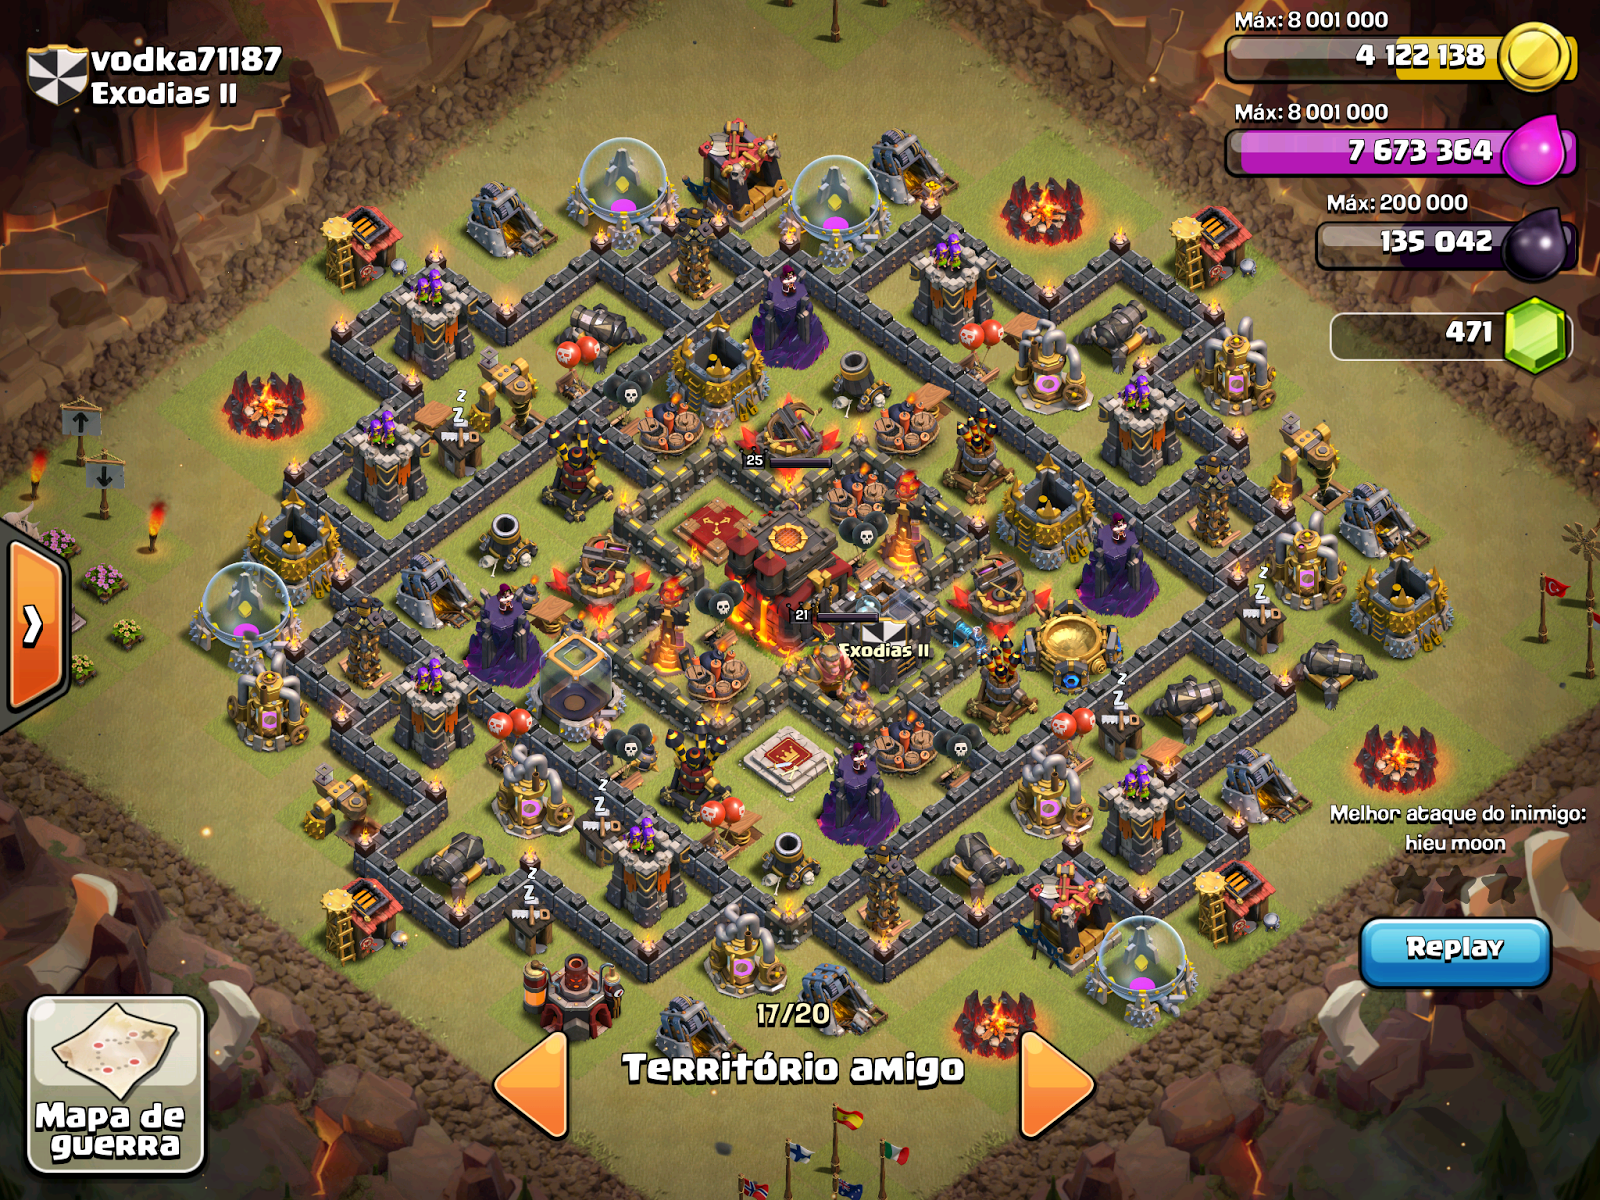 Clash of clans base designs for town hall 10 town hall 9 town hall 8